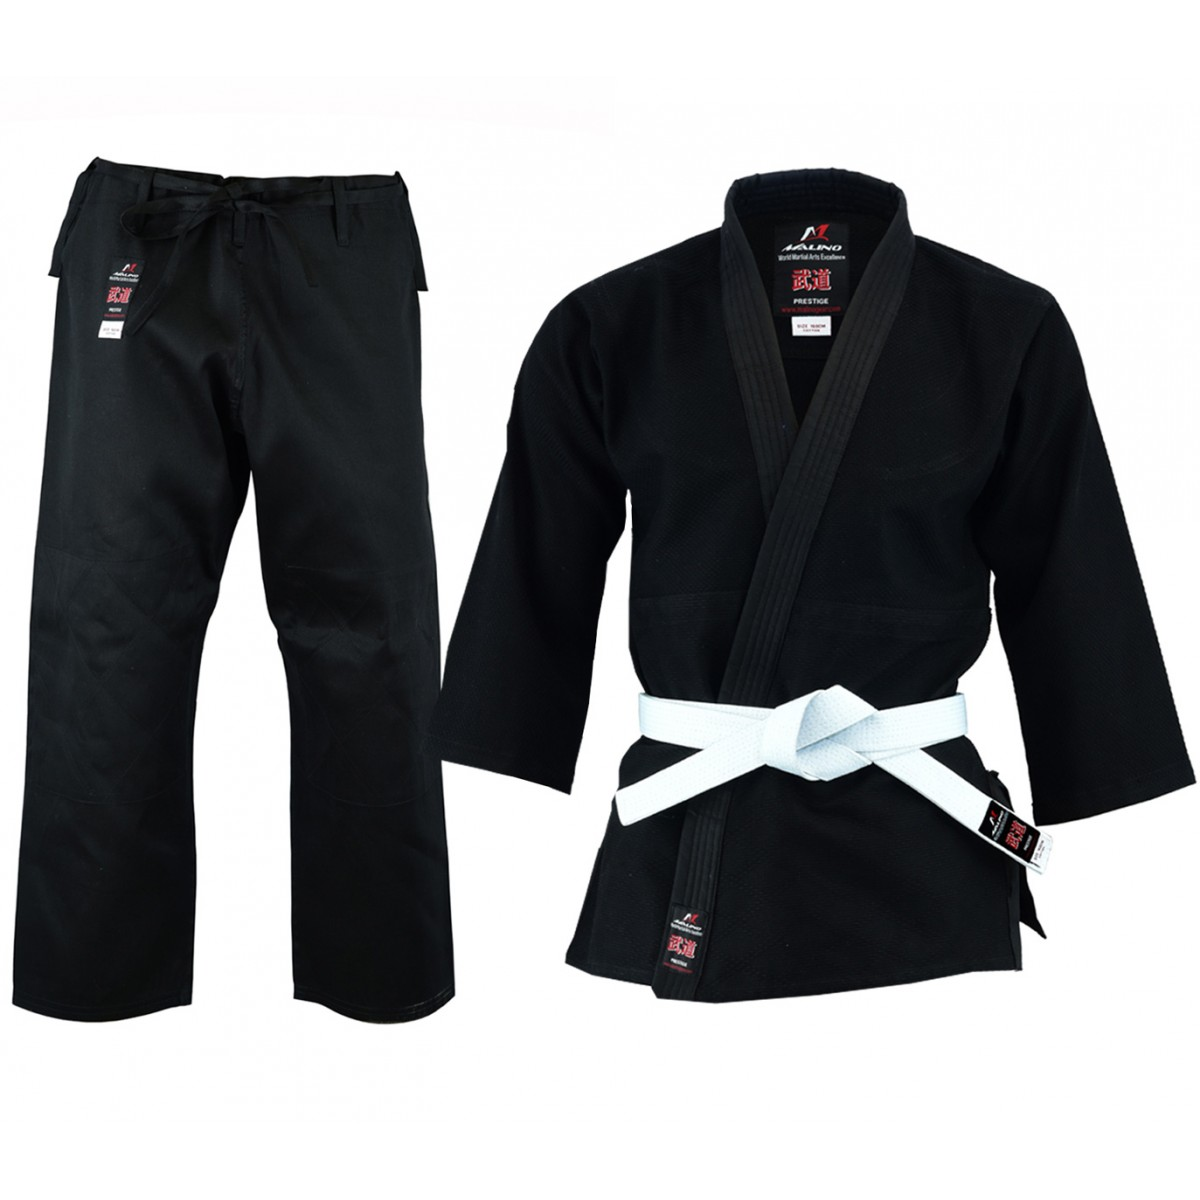 Malino 450g Adult Middleweight 100% Cotton Black Judo Suit